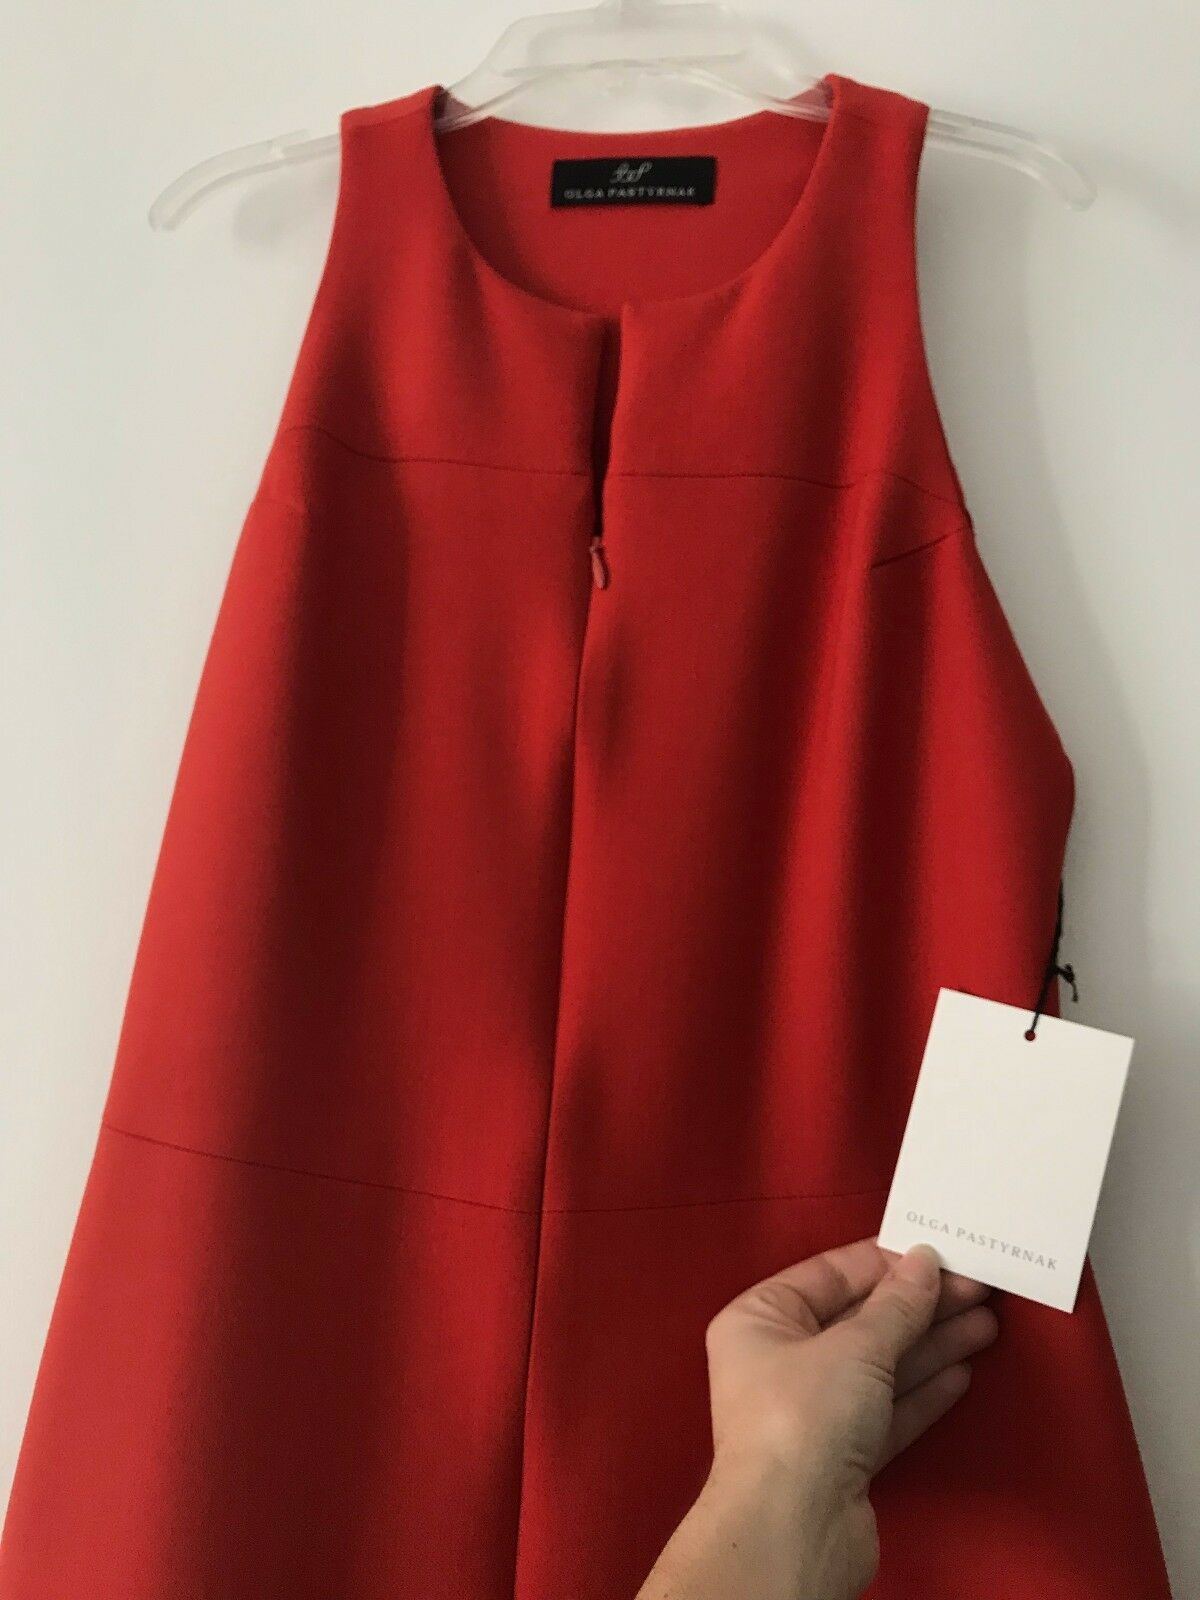 Olga Pastyrnak designer luxury modern stretch red dress dress dress size 0 - new with tags  61dbbd